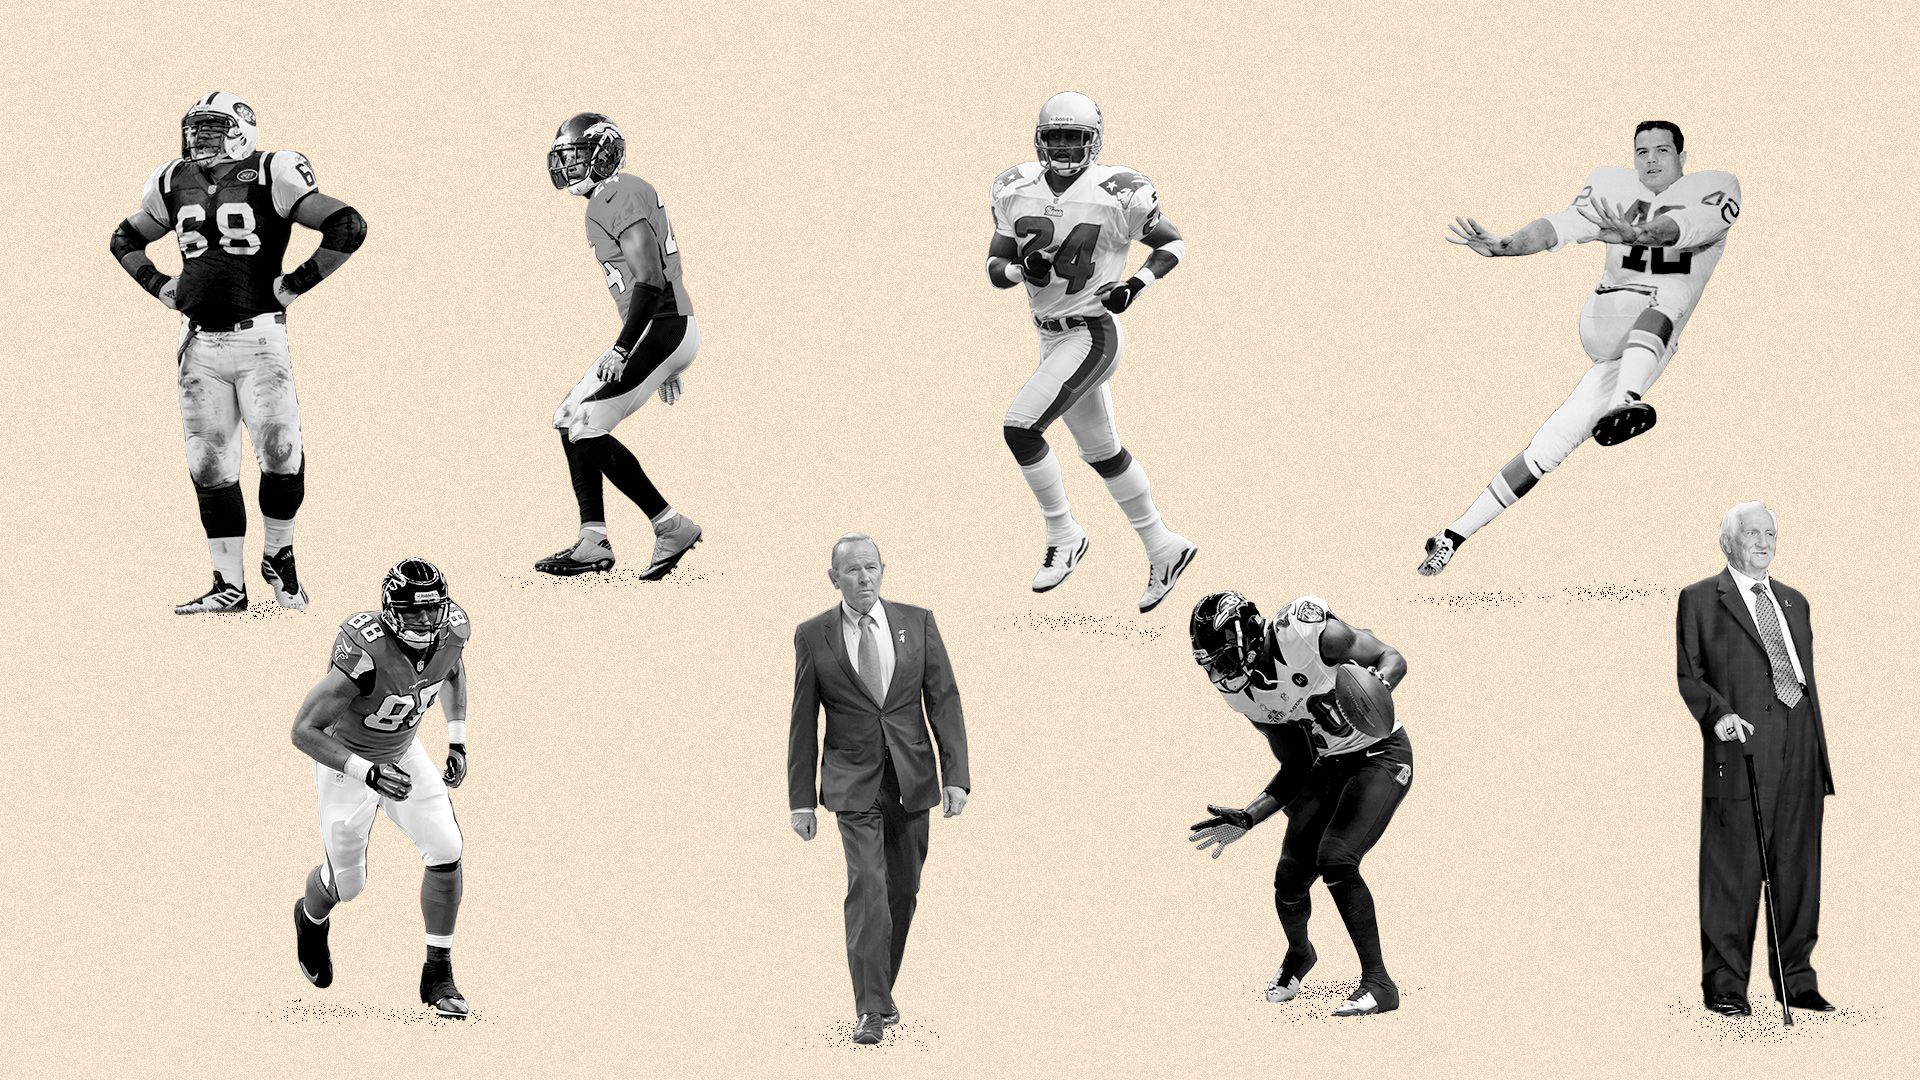 Illustration of Champ Bailey, Tony Gonzalez, Ty Law, Ed Reed, Johnny Robinson, Kevin Mawae, Pat Bowlen, and Gil Brandt